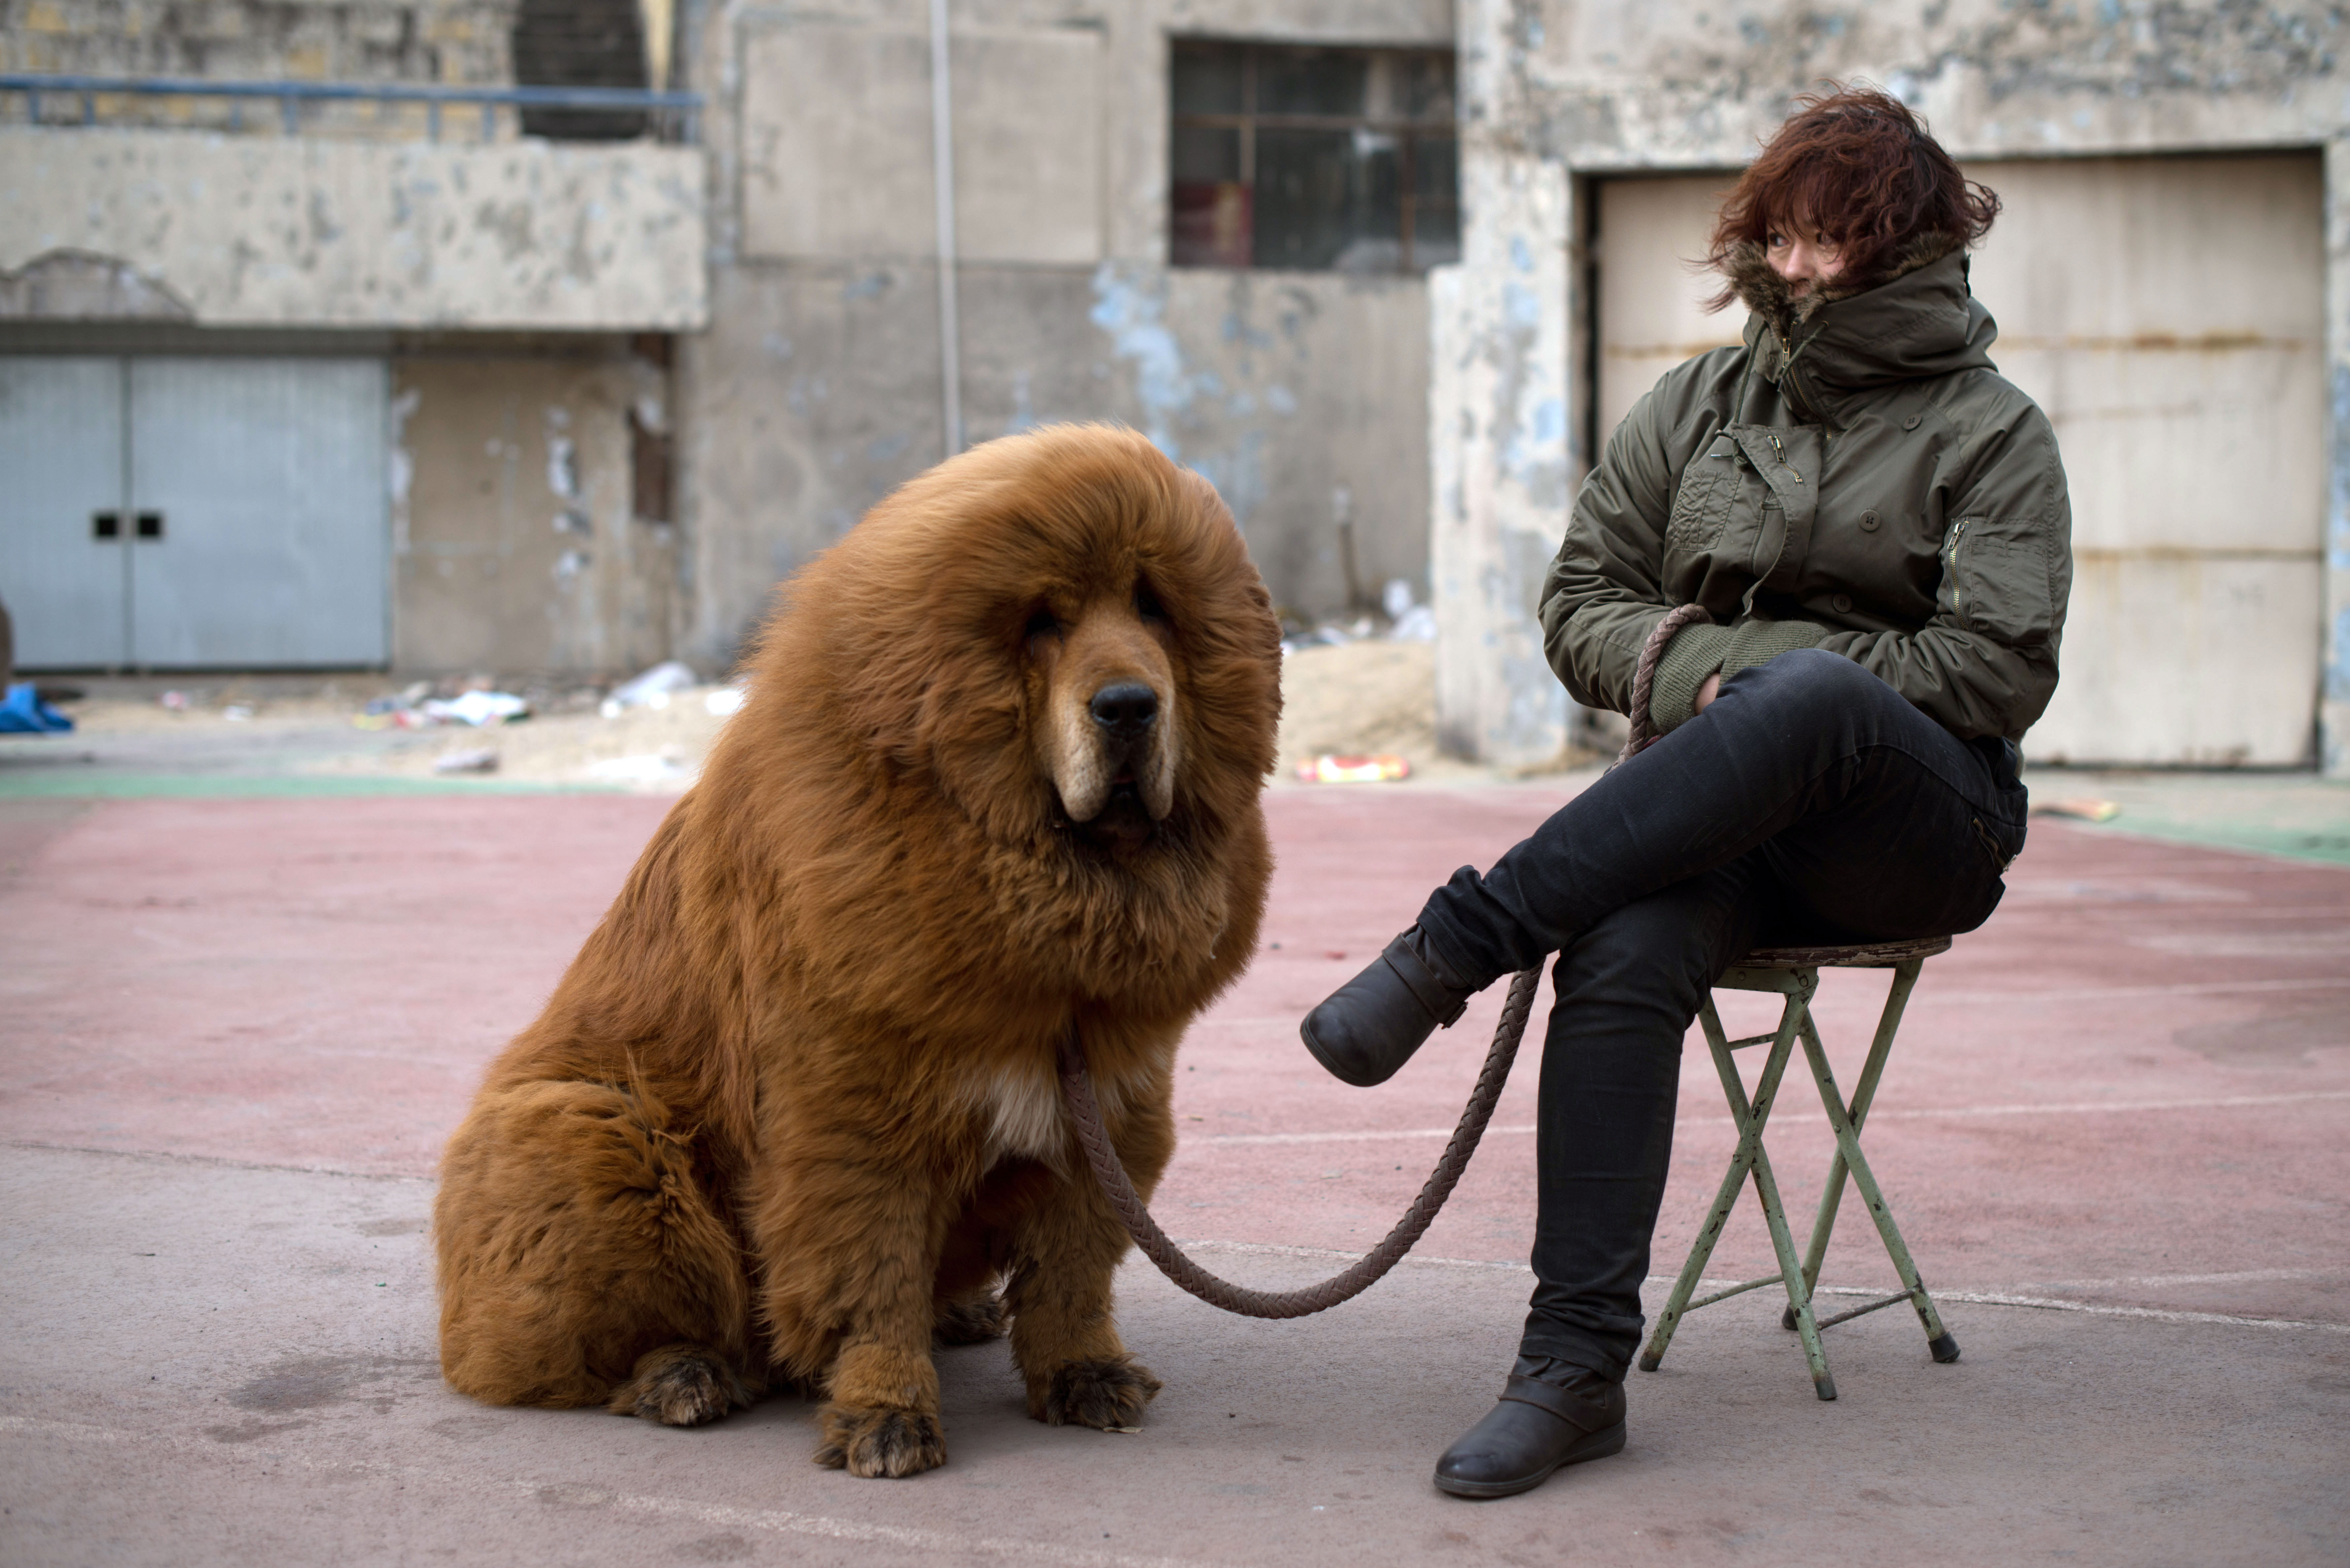 Chinese Zoo Tried to Pass Off Dog As Lion -- NYMag